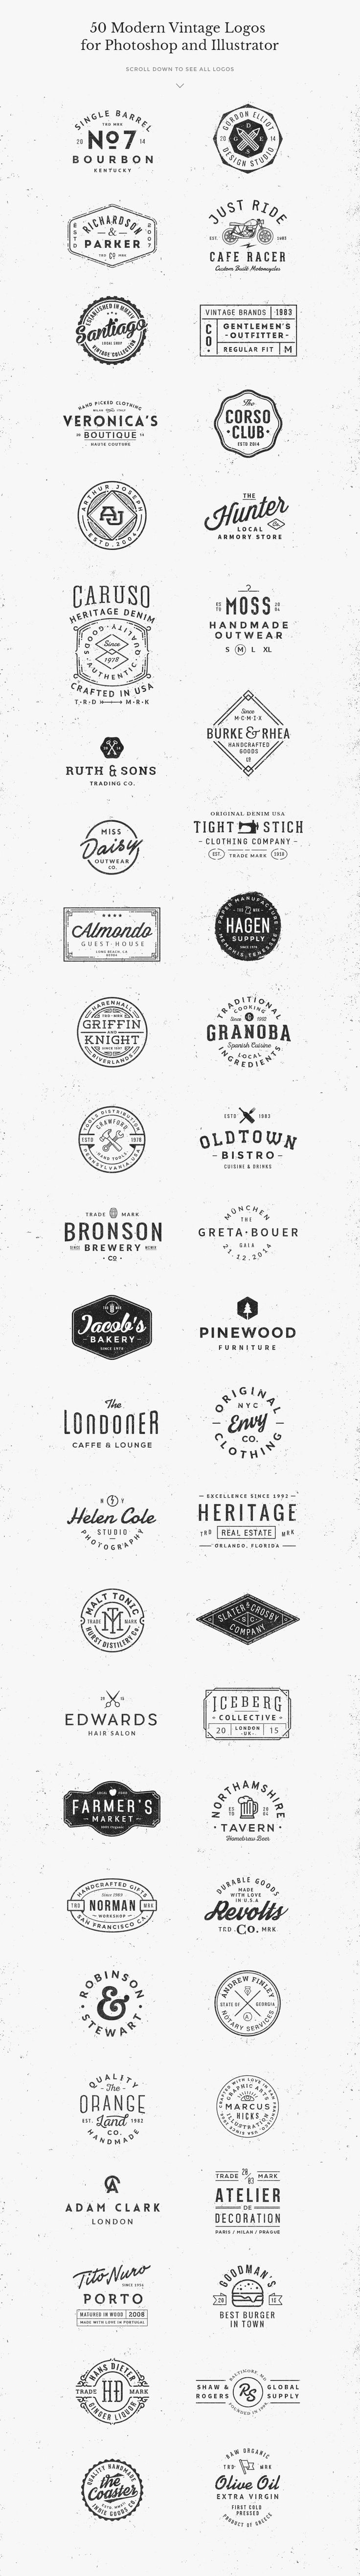 50 Logo Mock-ups + 50 Logo Templates on Inspirationde